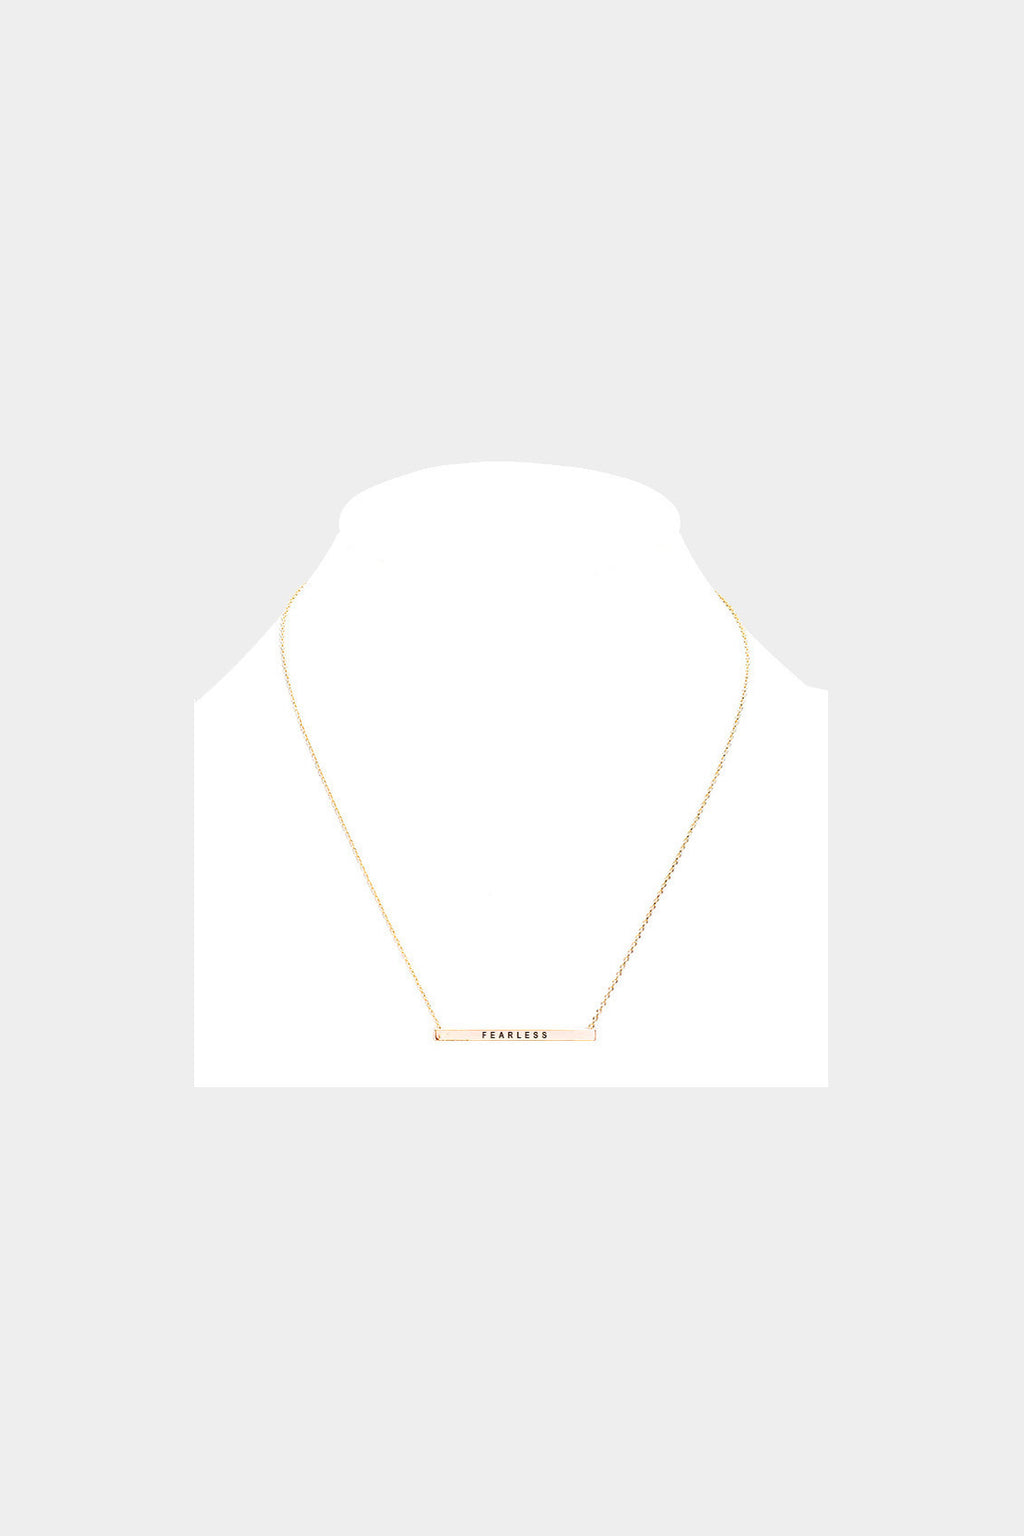 """Fearless"" Horizontal Metal Bar Necklace"